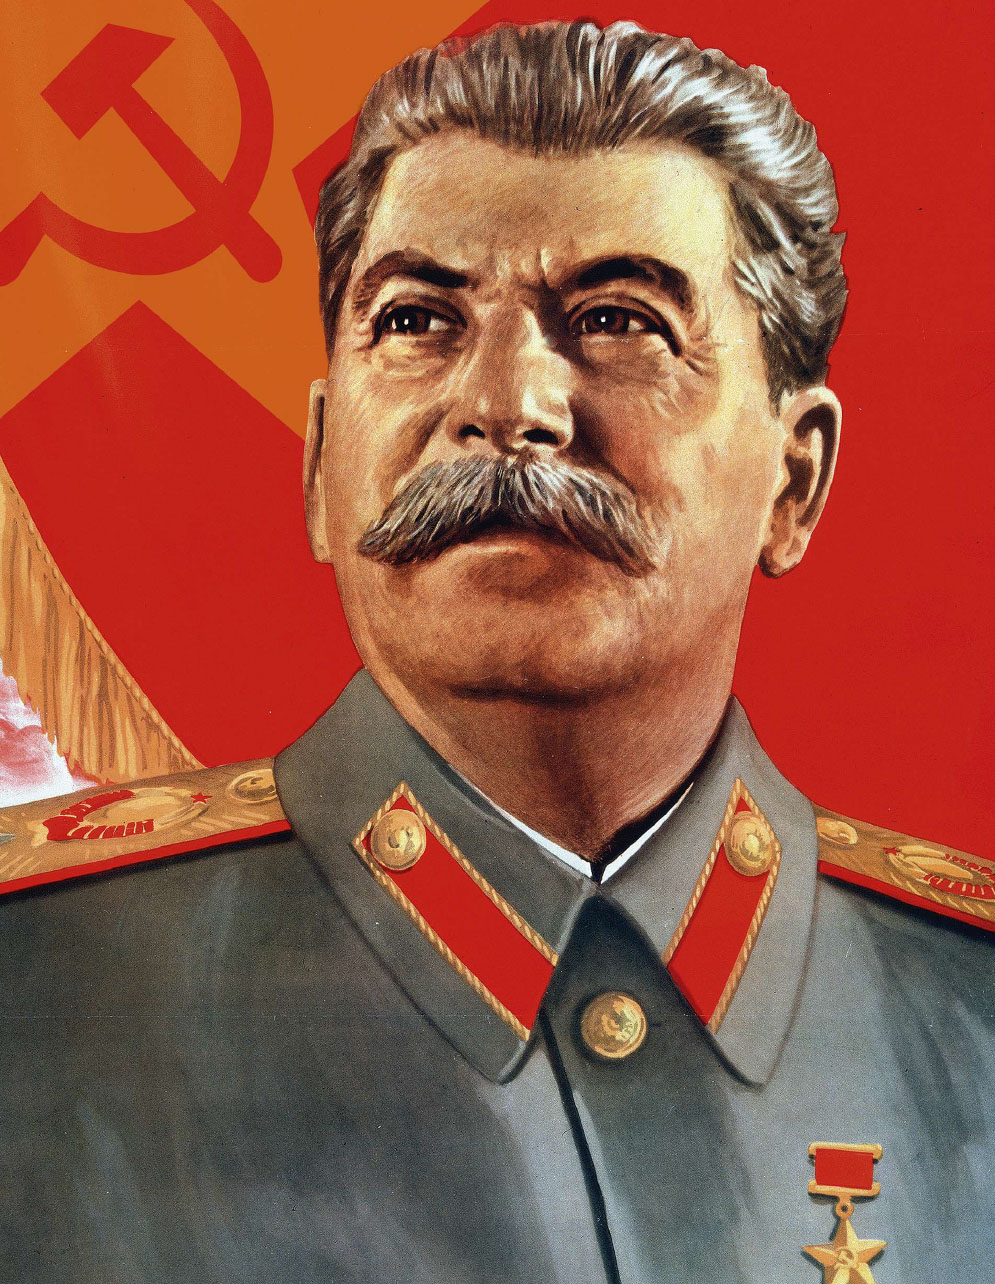 Joseph Stalin, former dictator of the Soviet Union